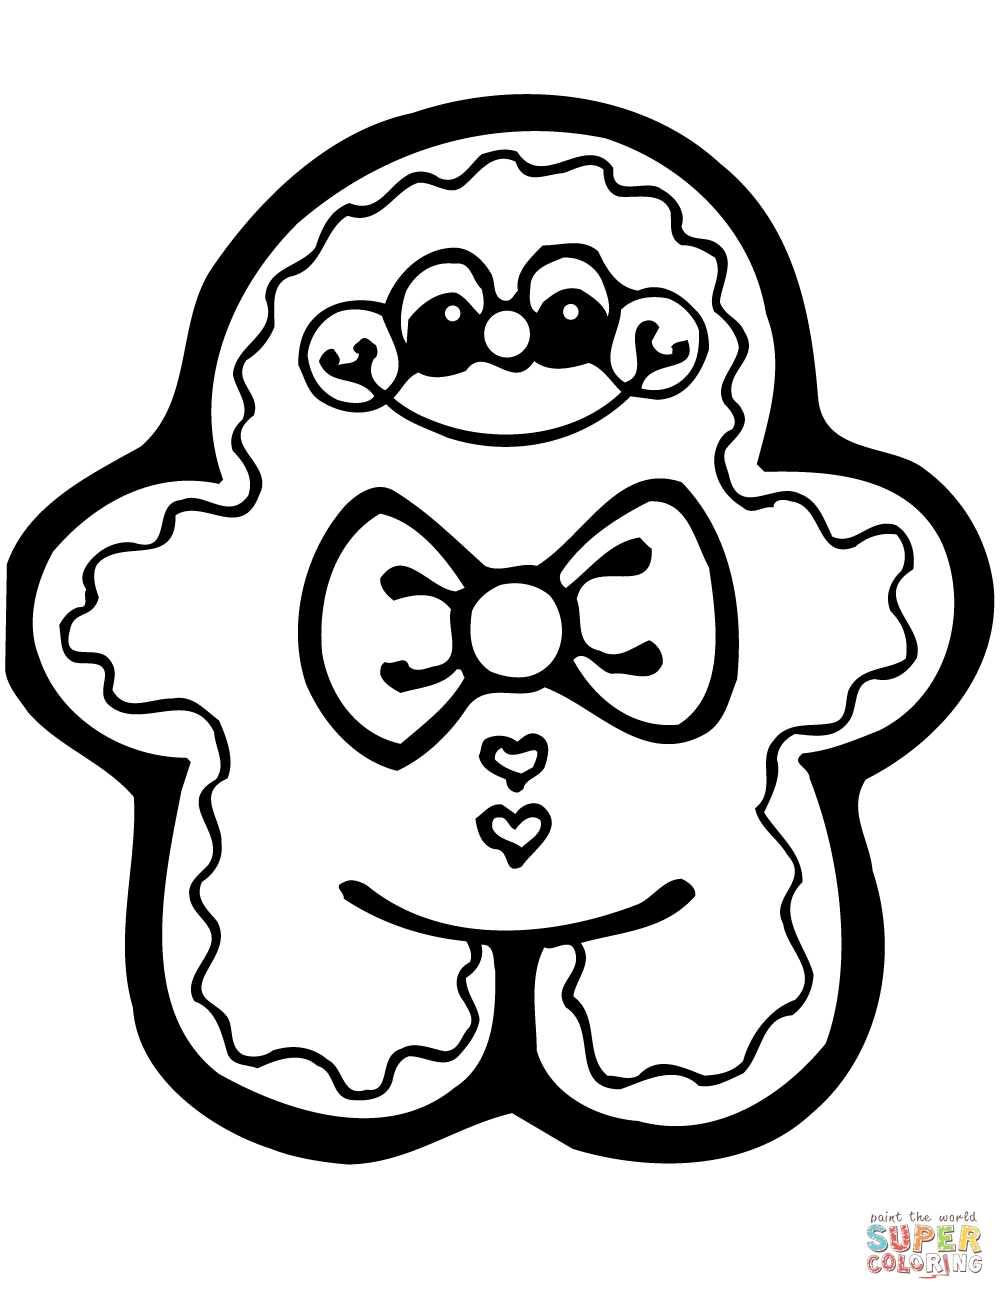 1005x1300 gingerbread man coloring page ppinews co